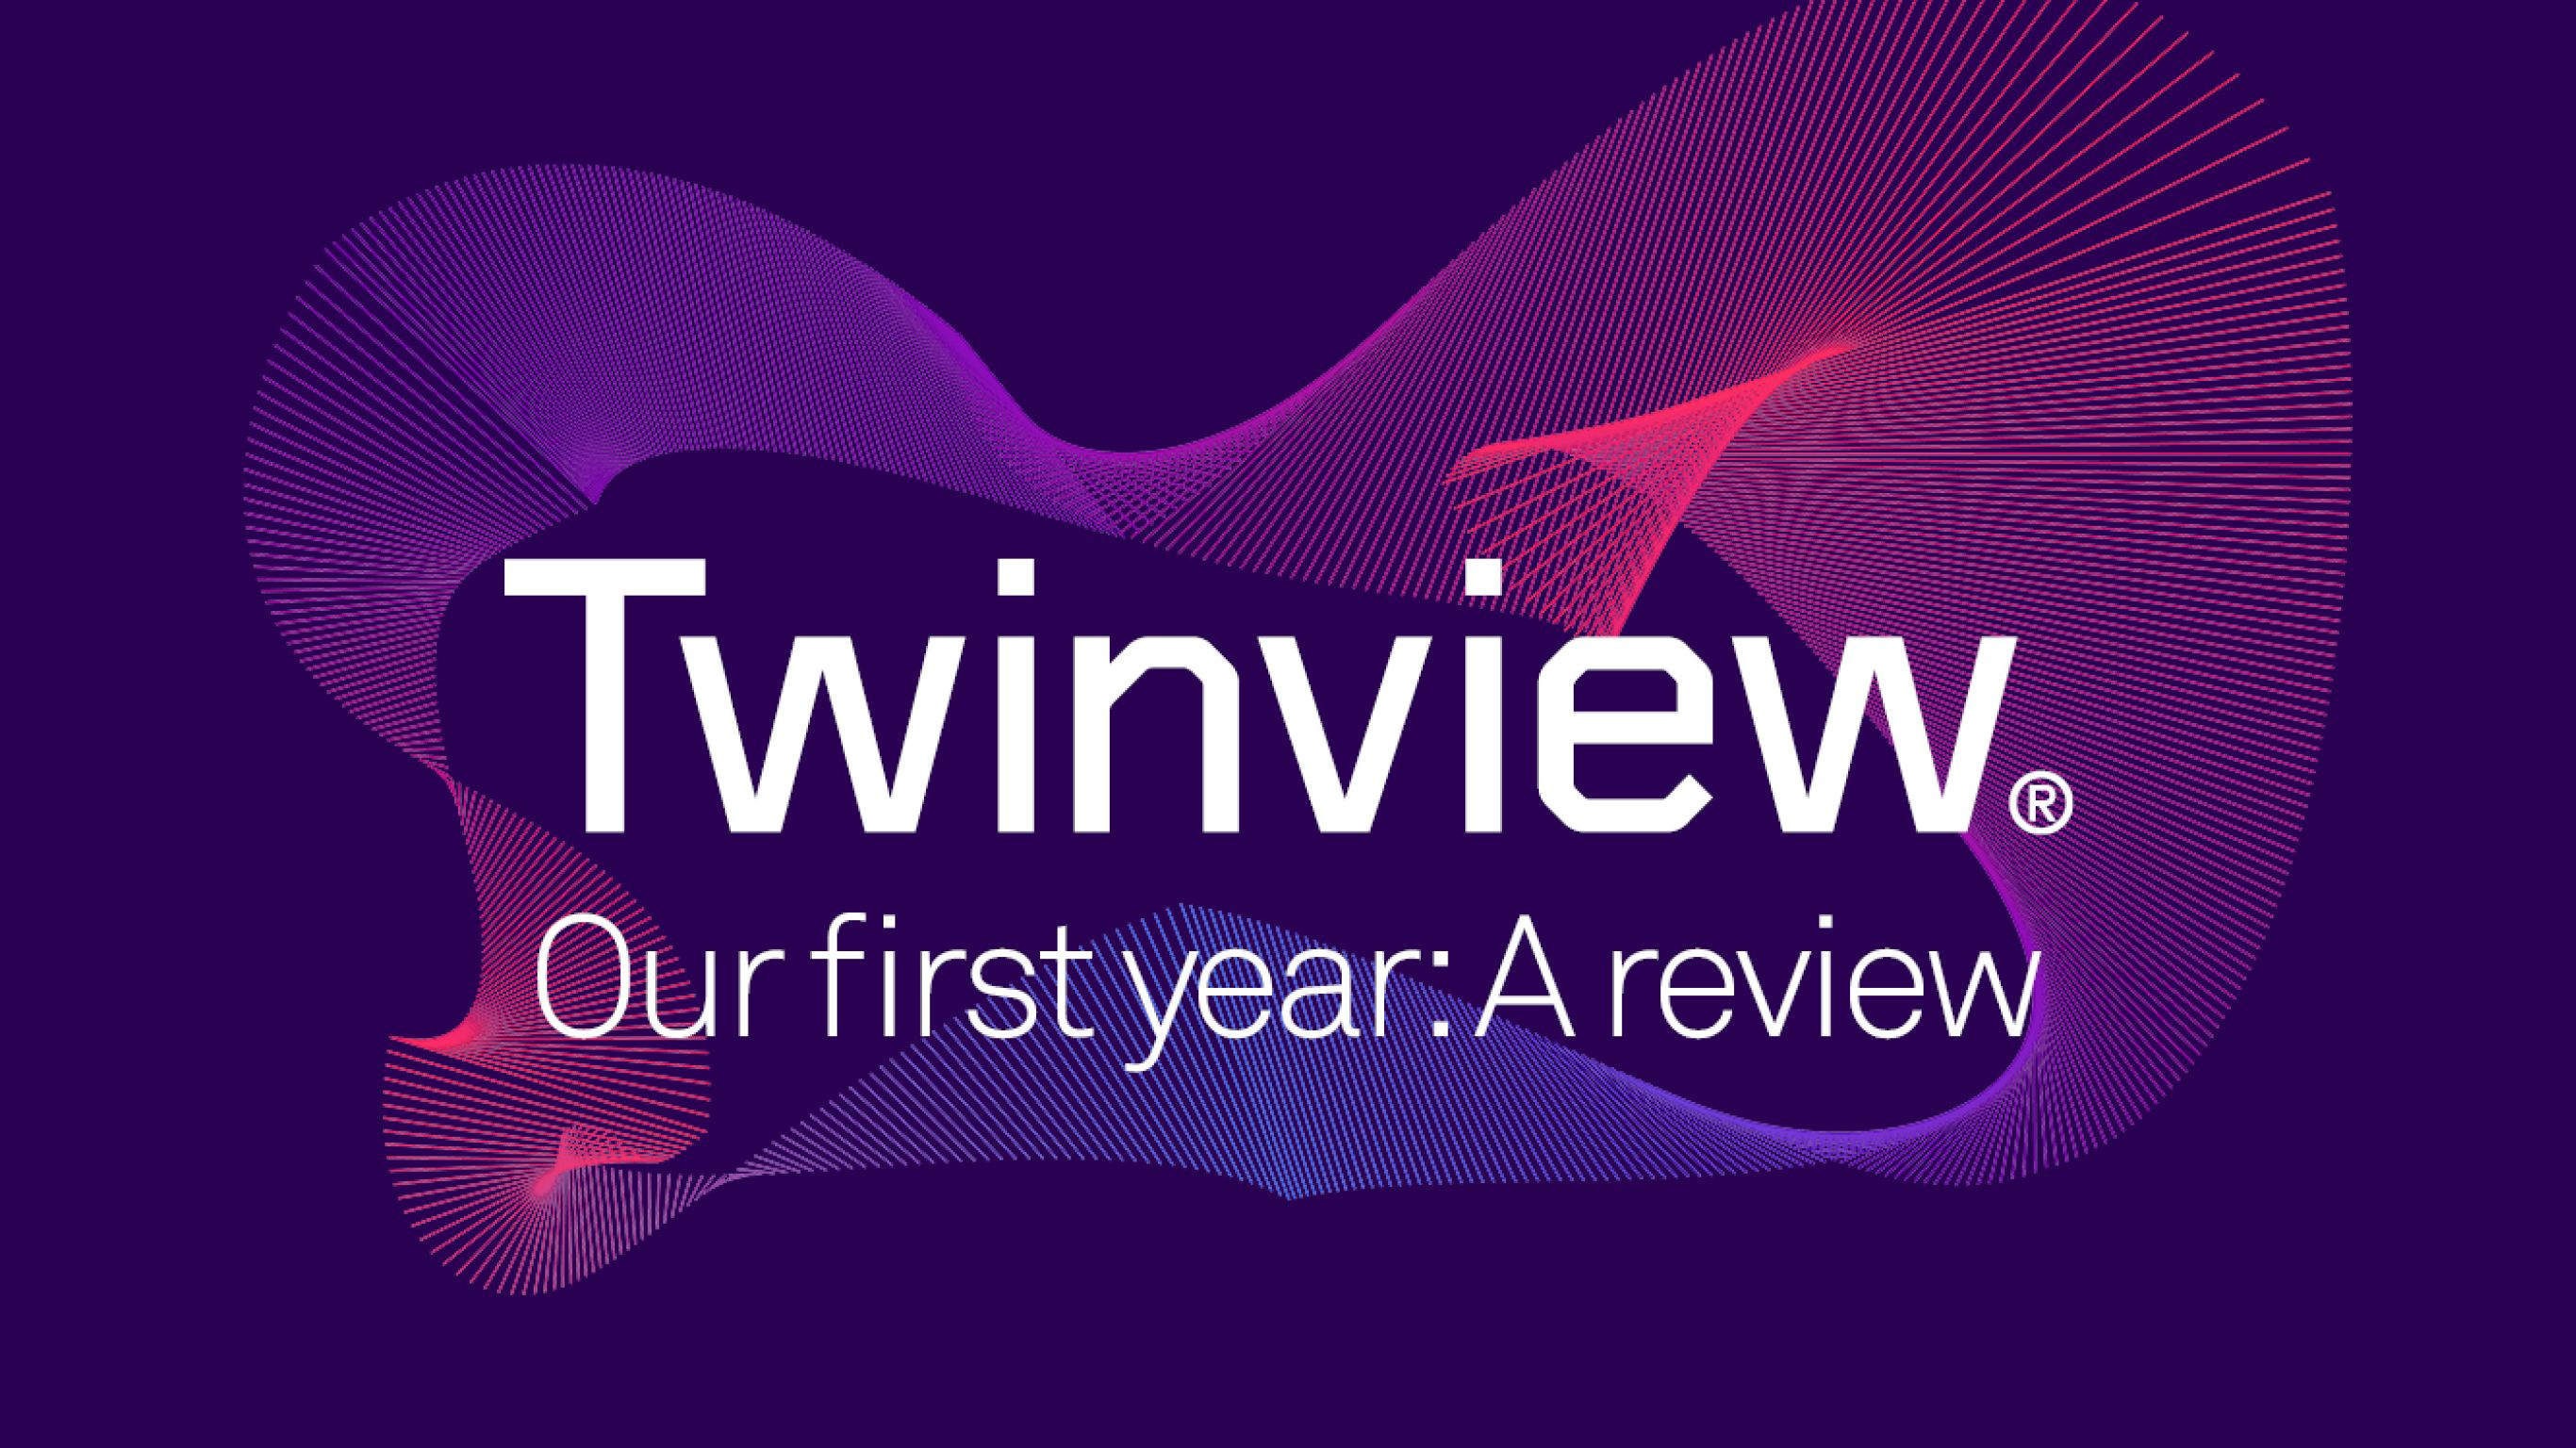 Our first year: A review